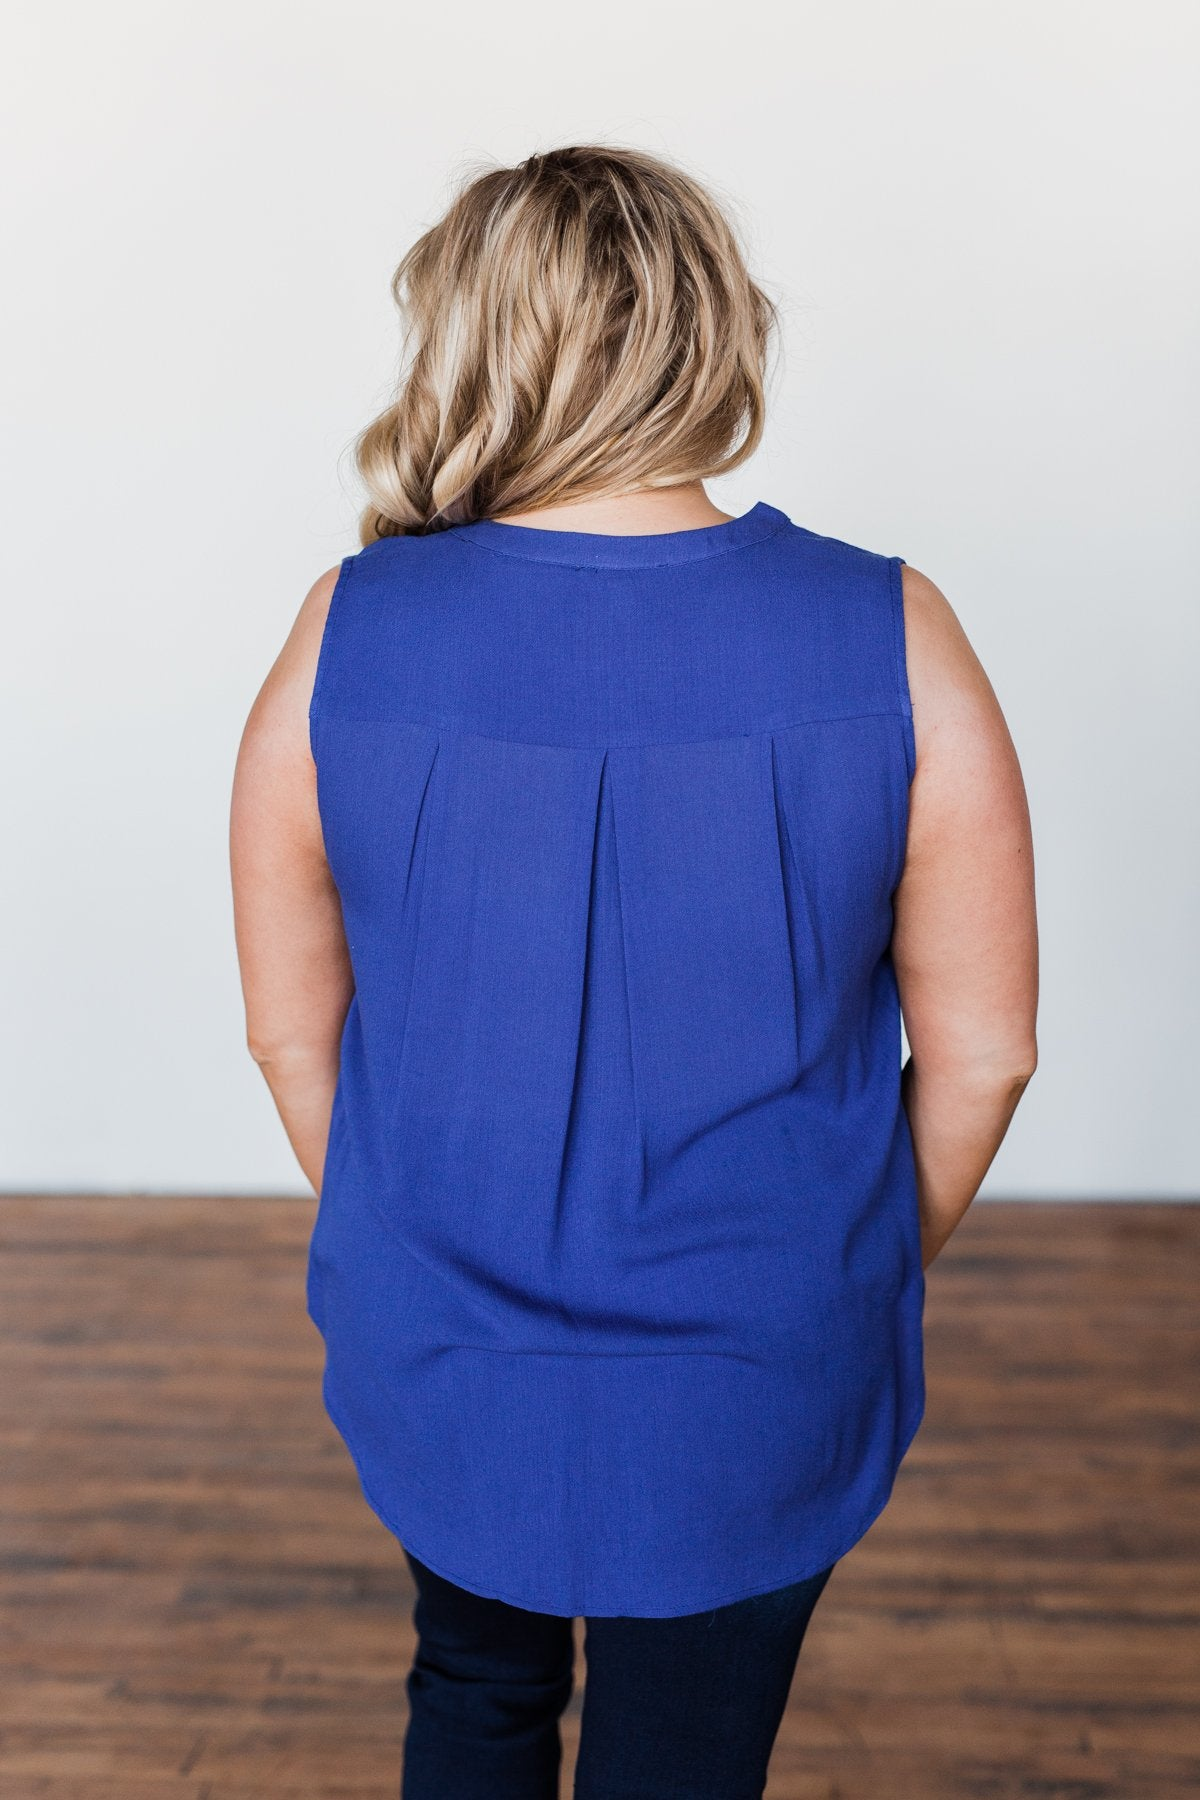 I Love Everything 3 Button Top- Royal Blue